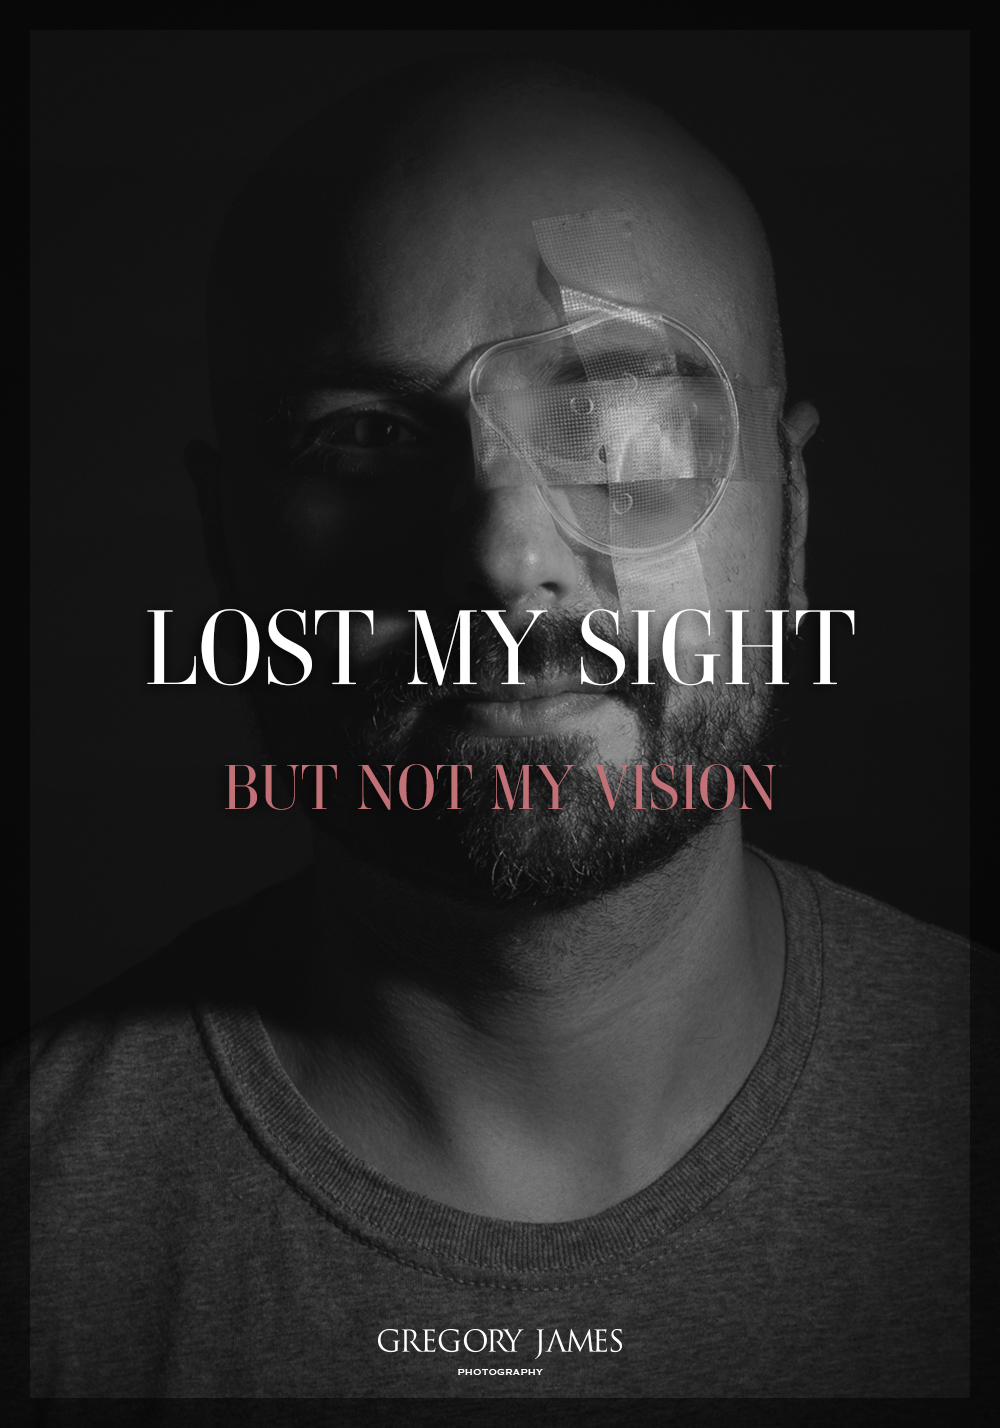 lost-my-sight-but-not-my-vision.jpg